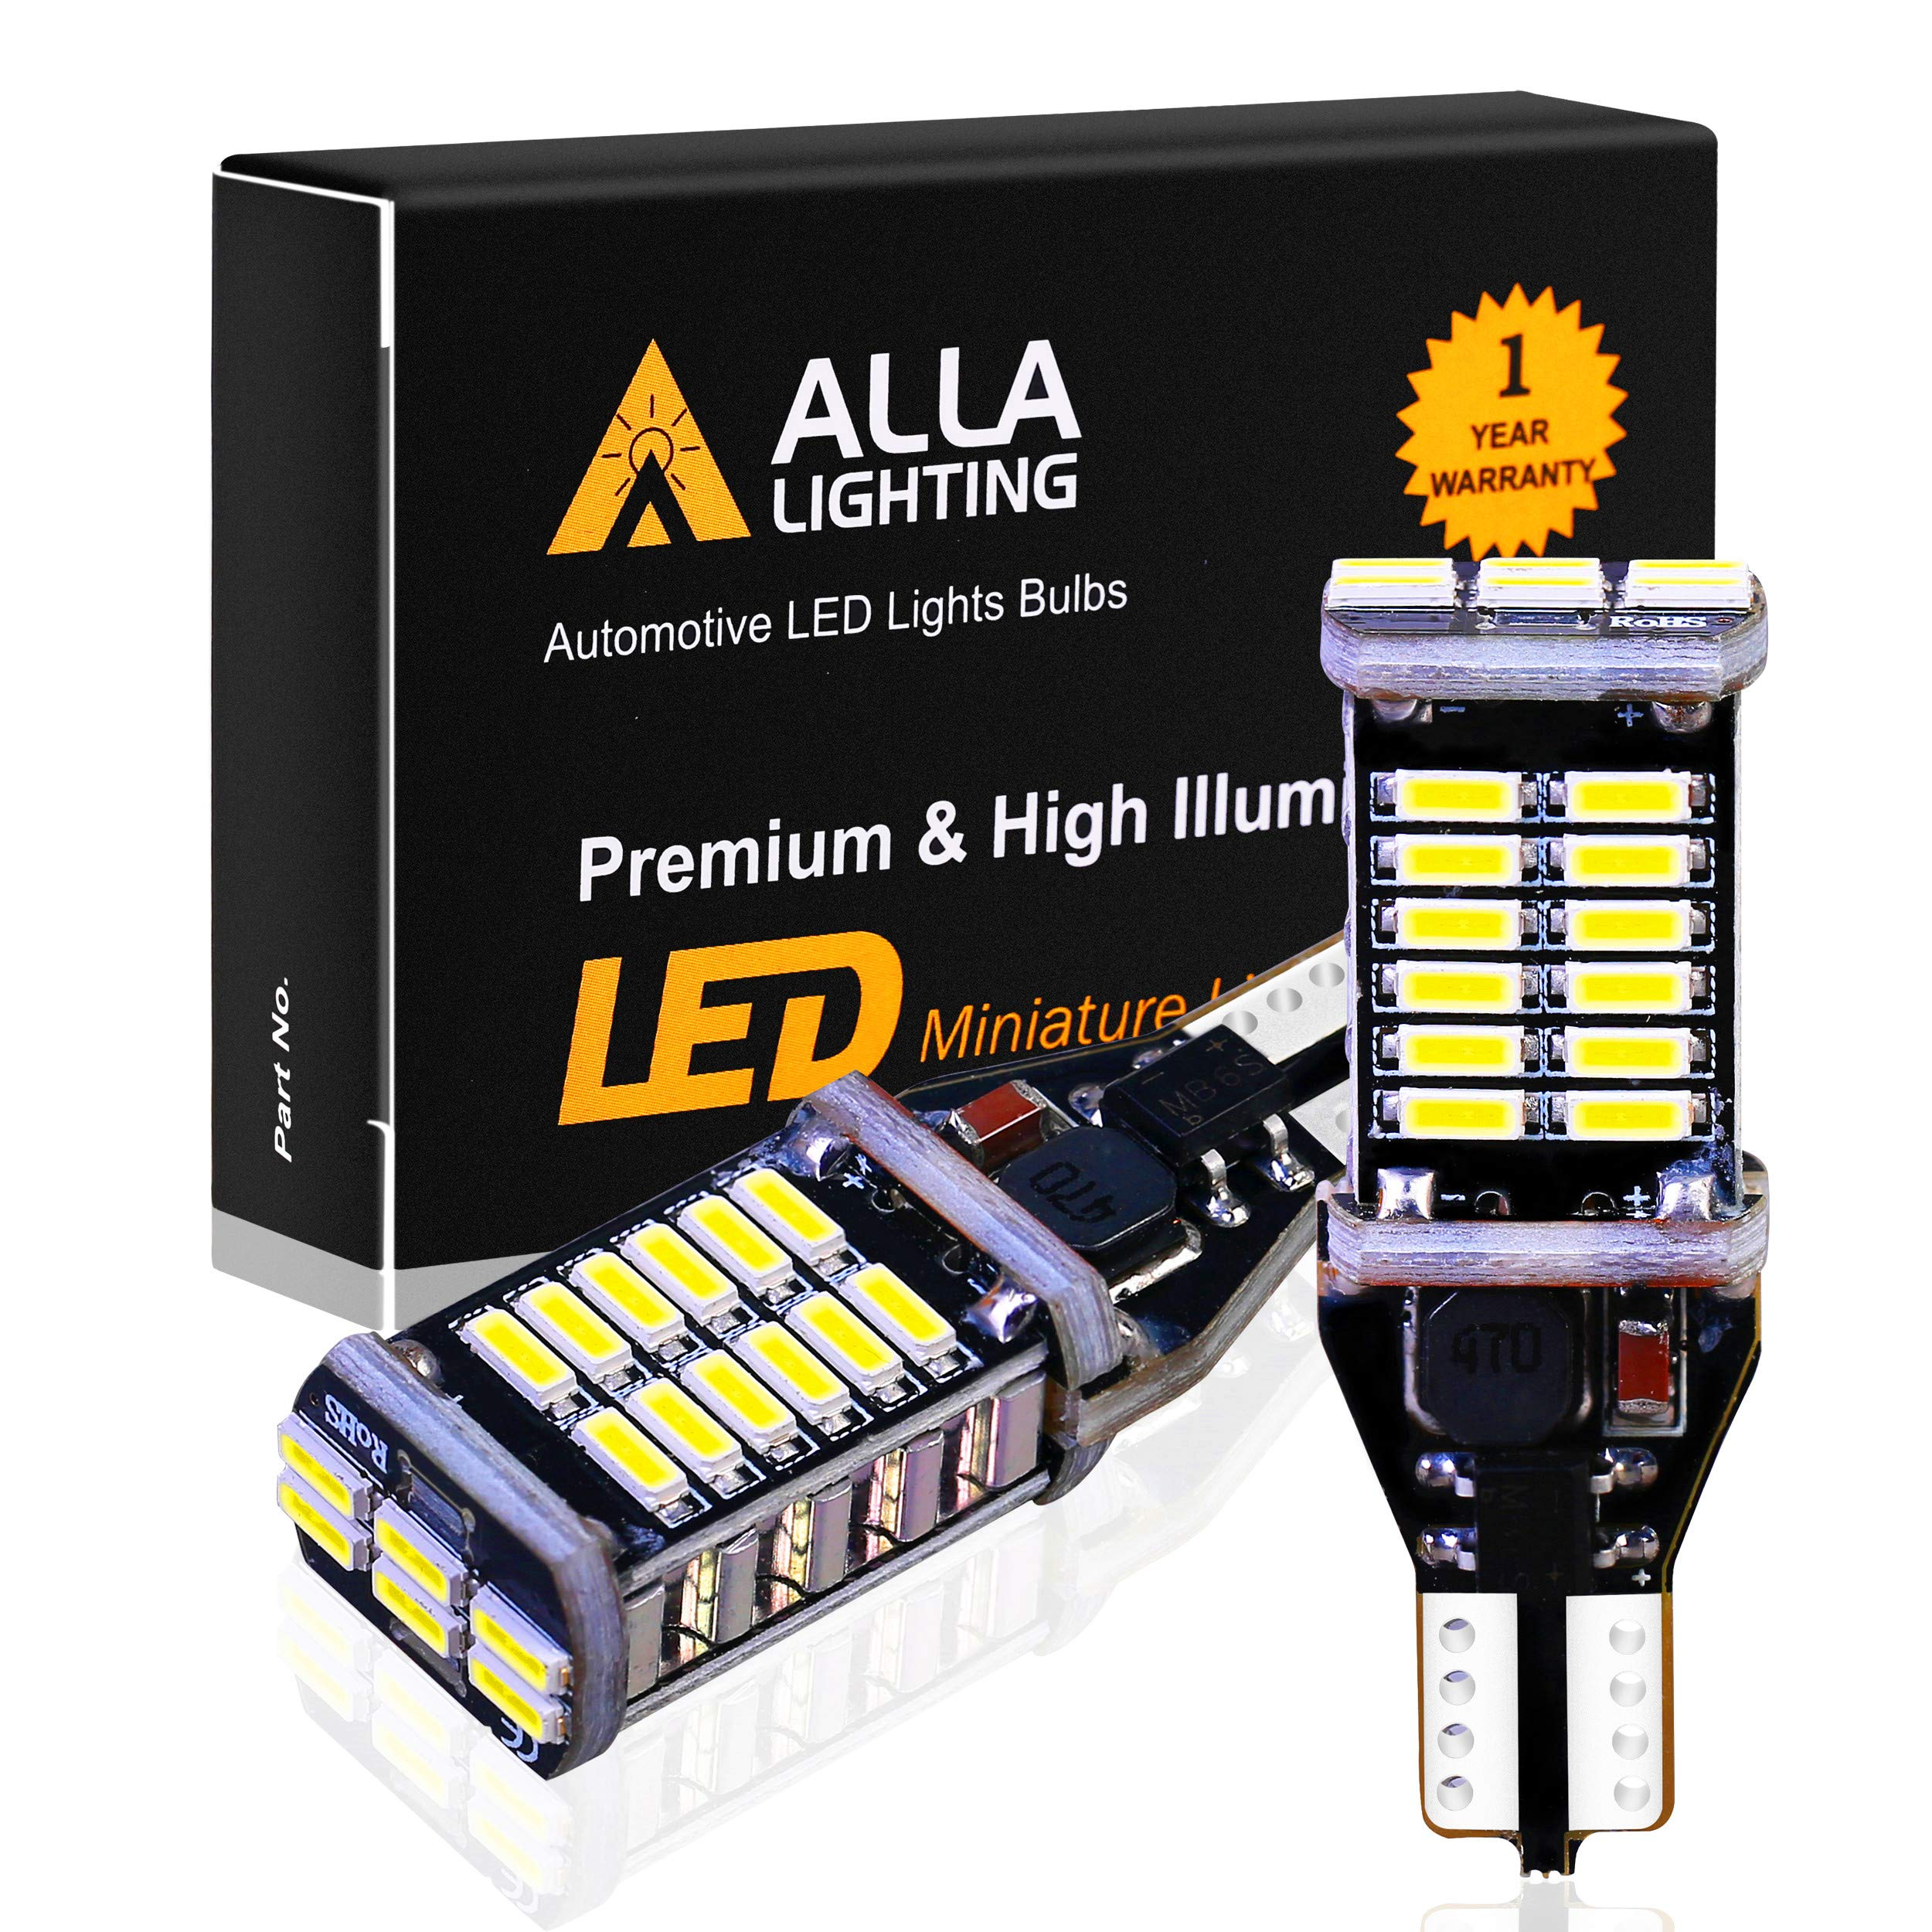 Alla Lighting 912 921 LED Backup Light Bulbs Super Bright 4014 30-SMD Chipsets Extreme